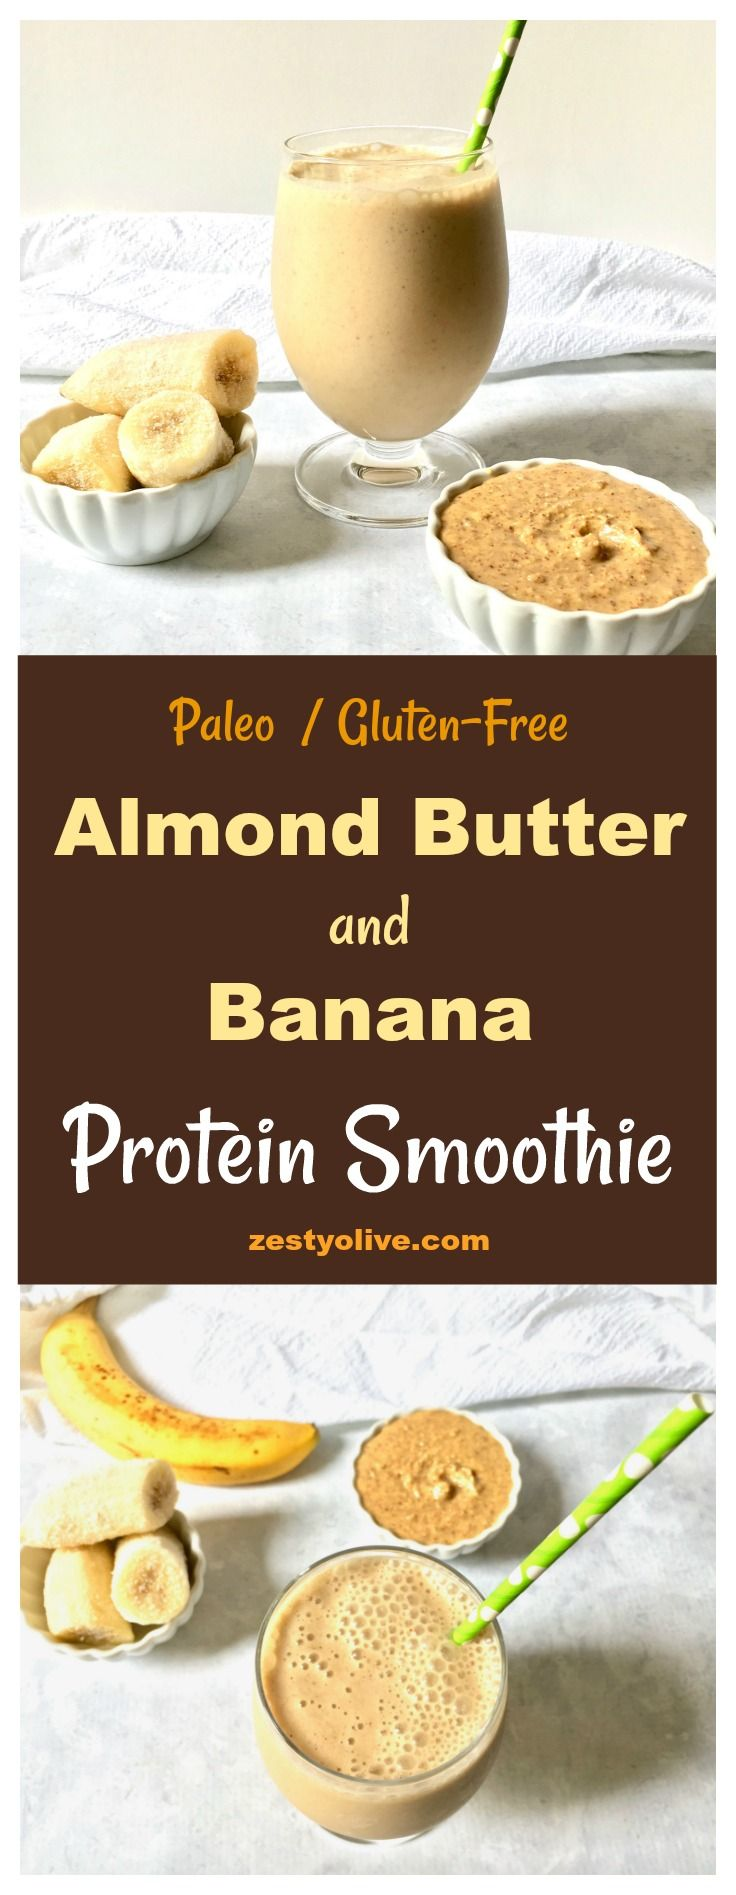 This Almond Butter and Banana Protein Smoothie is healthy, paleo and gluten-free. #smoothie #proteinshakes #ProteinSmoothie #almondbutter #recipes #vitamixrecipes #bananas #glutenfree #paleo #breakfast